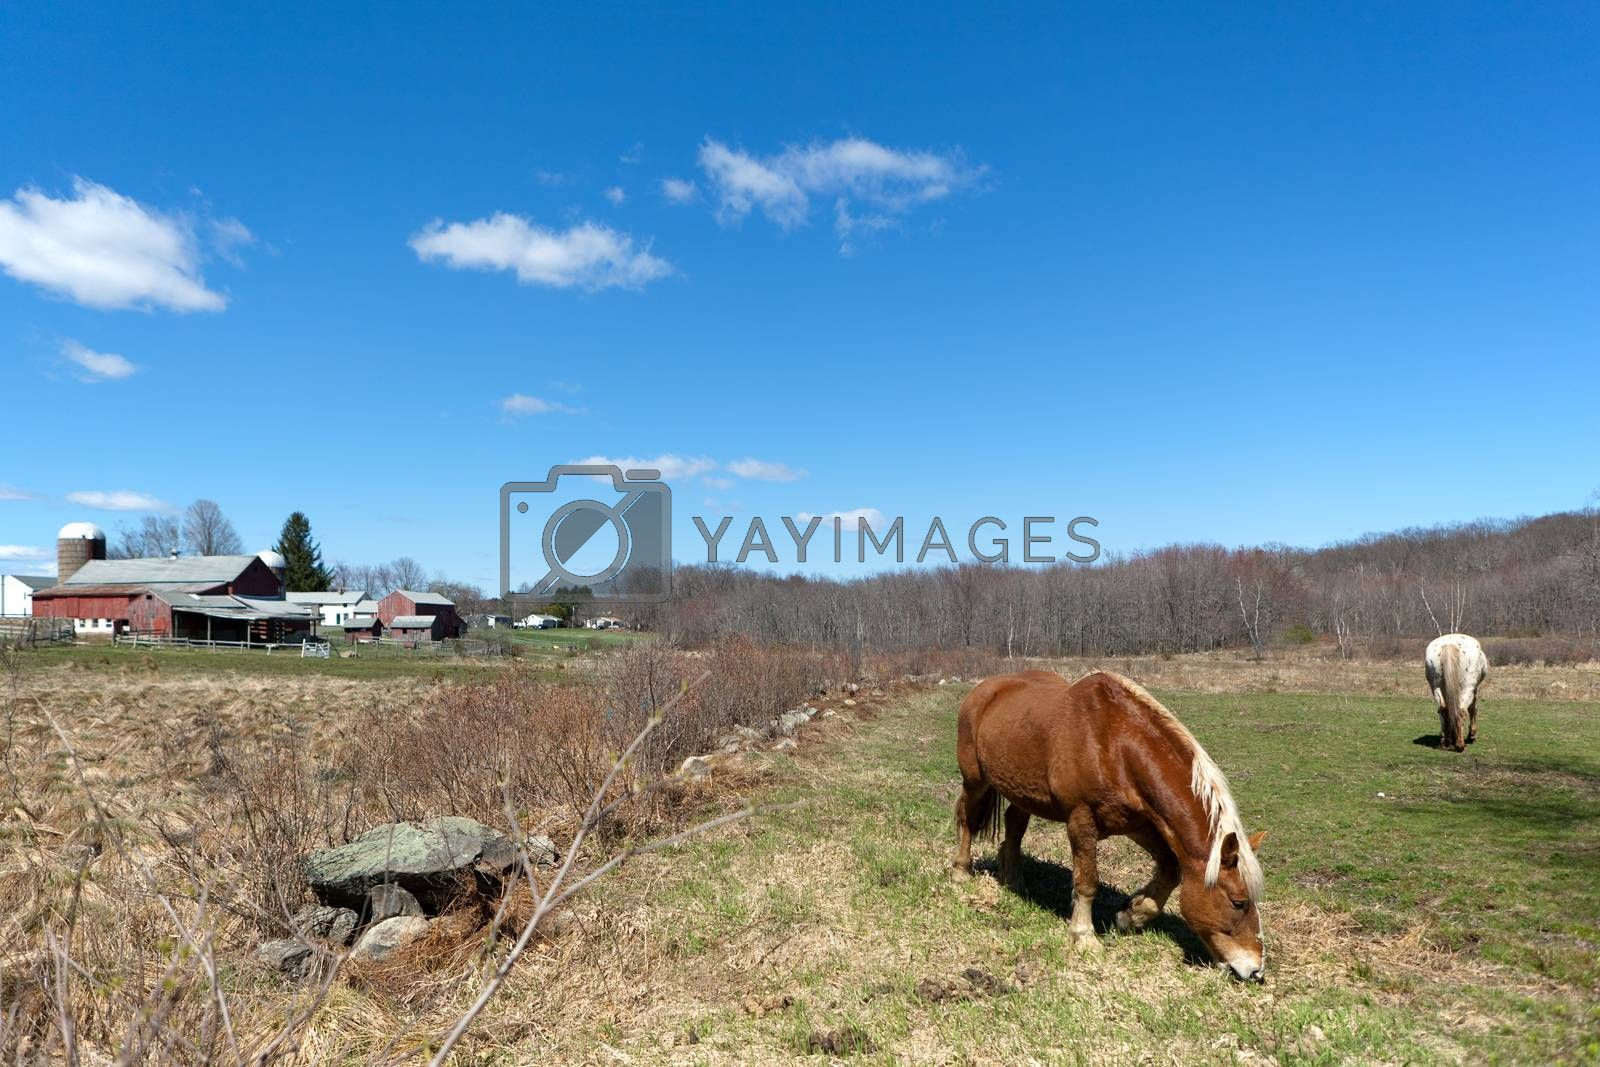 Royalty free image of Horses Grazing in the Pasture by graficallyminded